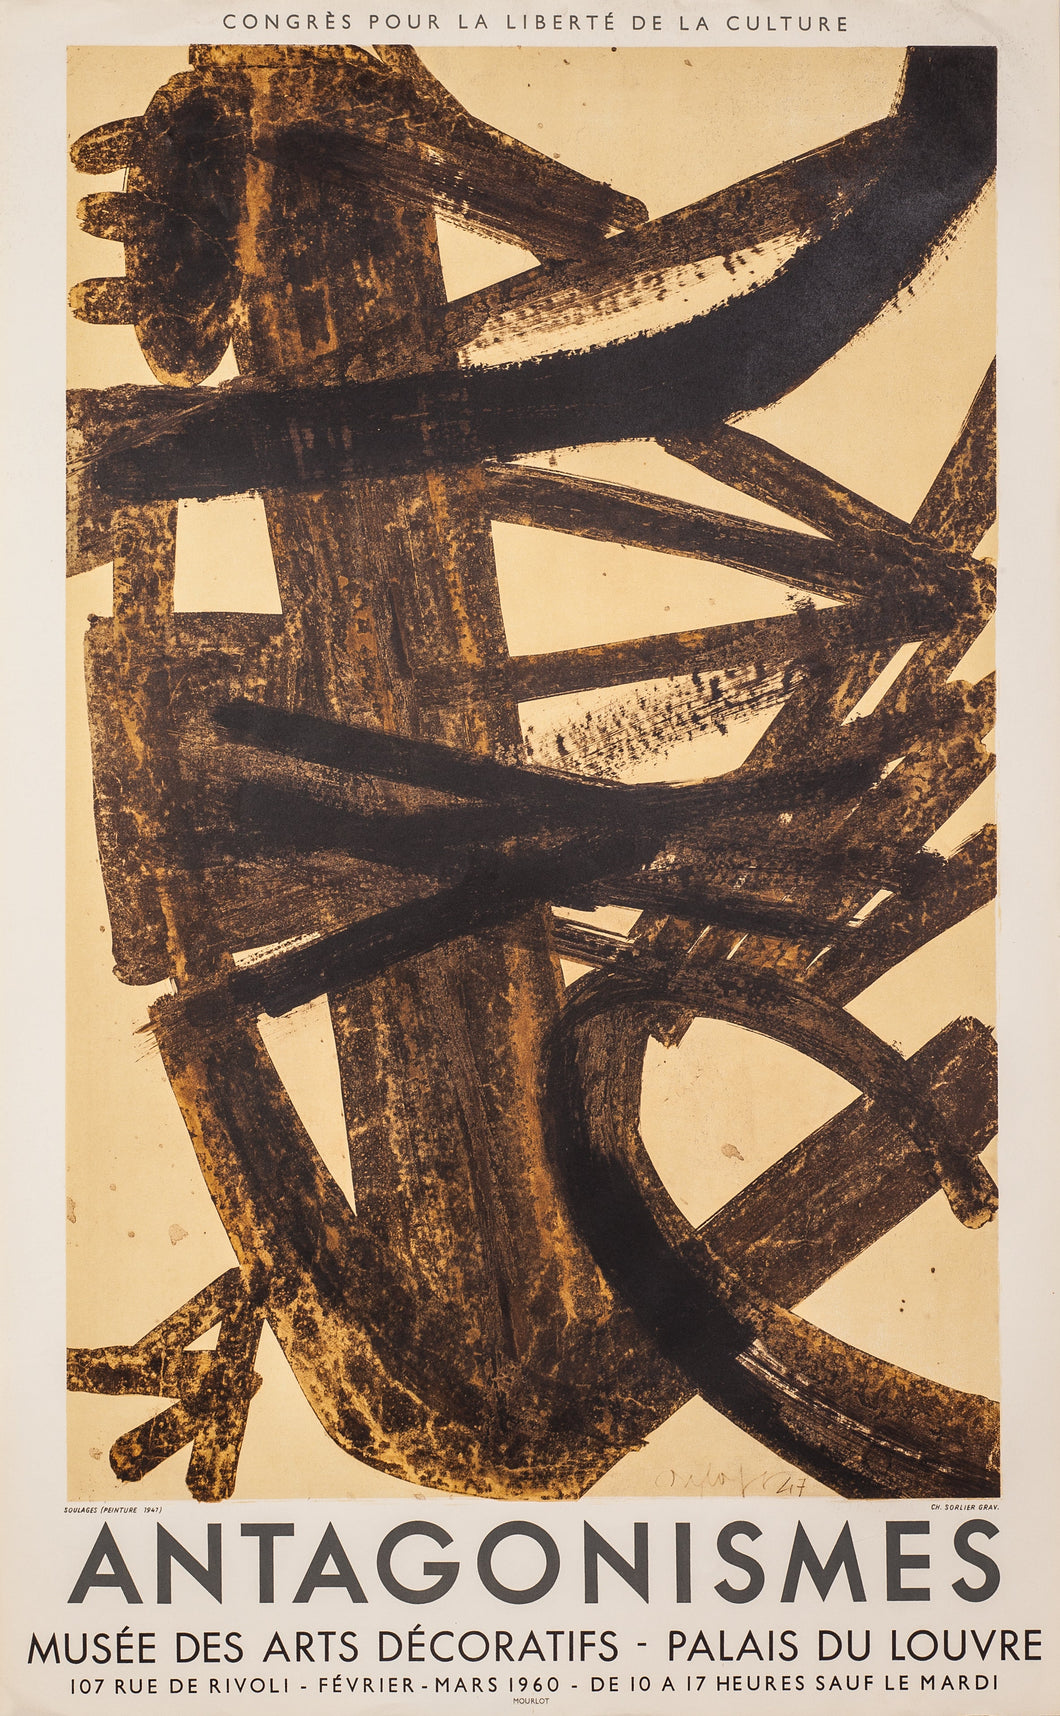 Antagonismes by Pierre Soulages